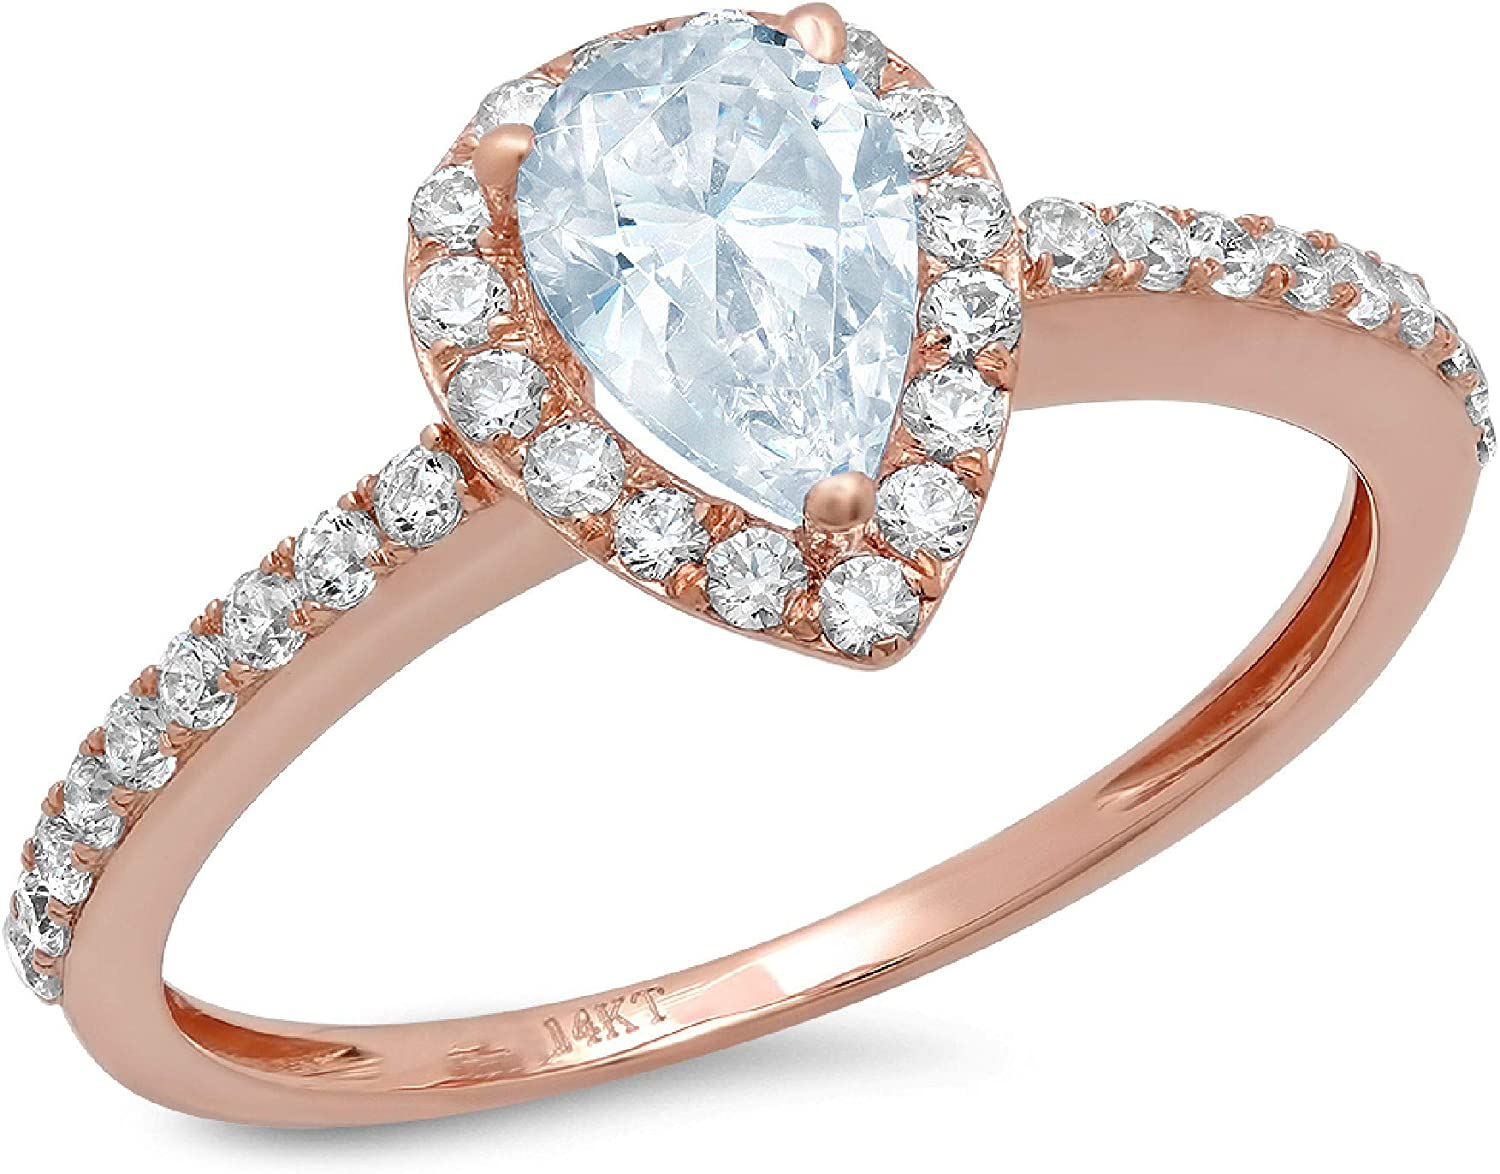 1.22ct Brilliant Pear Cut Solitaire Accent Genuine Flawless Blue Simulated Diamond Gemstone Engagement Promise Anniversary Bridal Wedding Ring Solid 18K Rose Gold